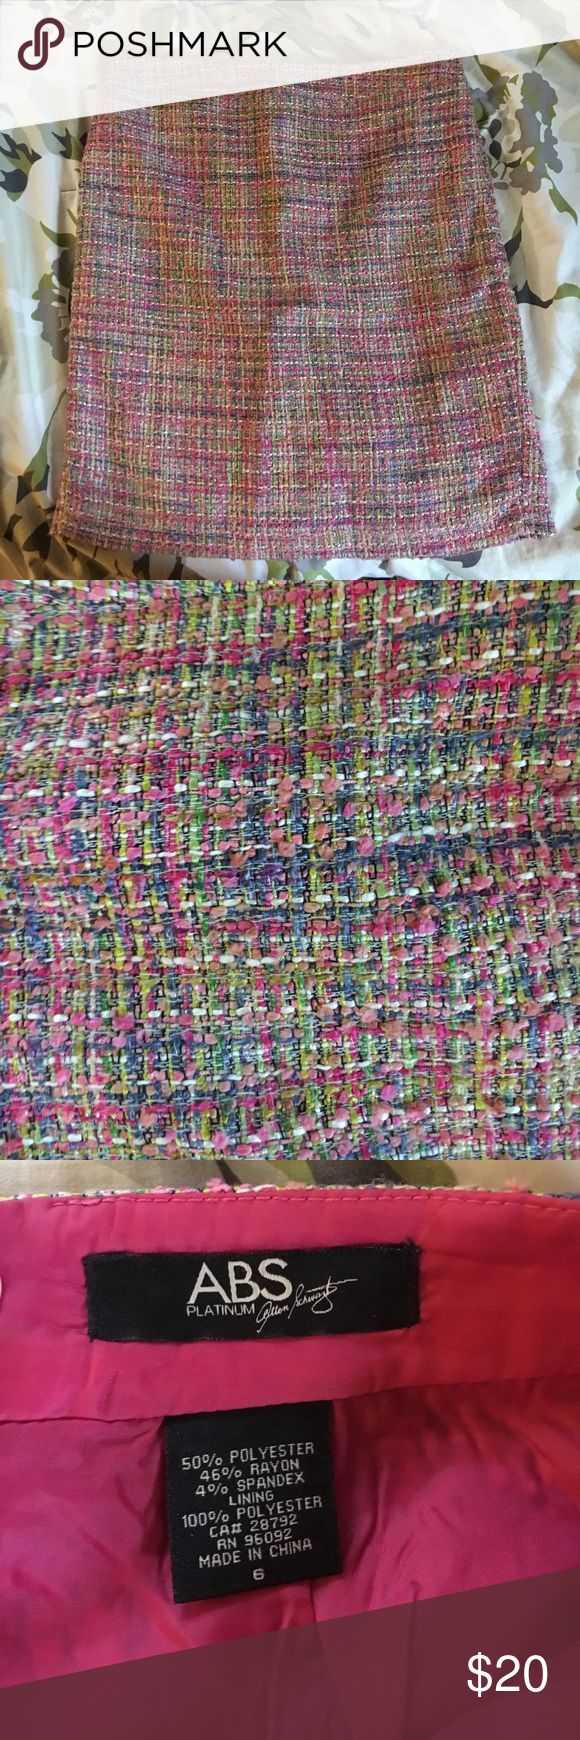 "ABS Allen Schwartz Tweed Skirt sz 6 Gorgeous tweed skirt by ABS by Allen Schwartz. Size 6. Tweed is pink, light green, light blue, chartreuse, light pink and white. Skirt measures 20"" long and is lined. Hidden Zippered back and buttoned tab. ABS Allen Schwartz Skirts Mini"